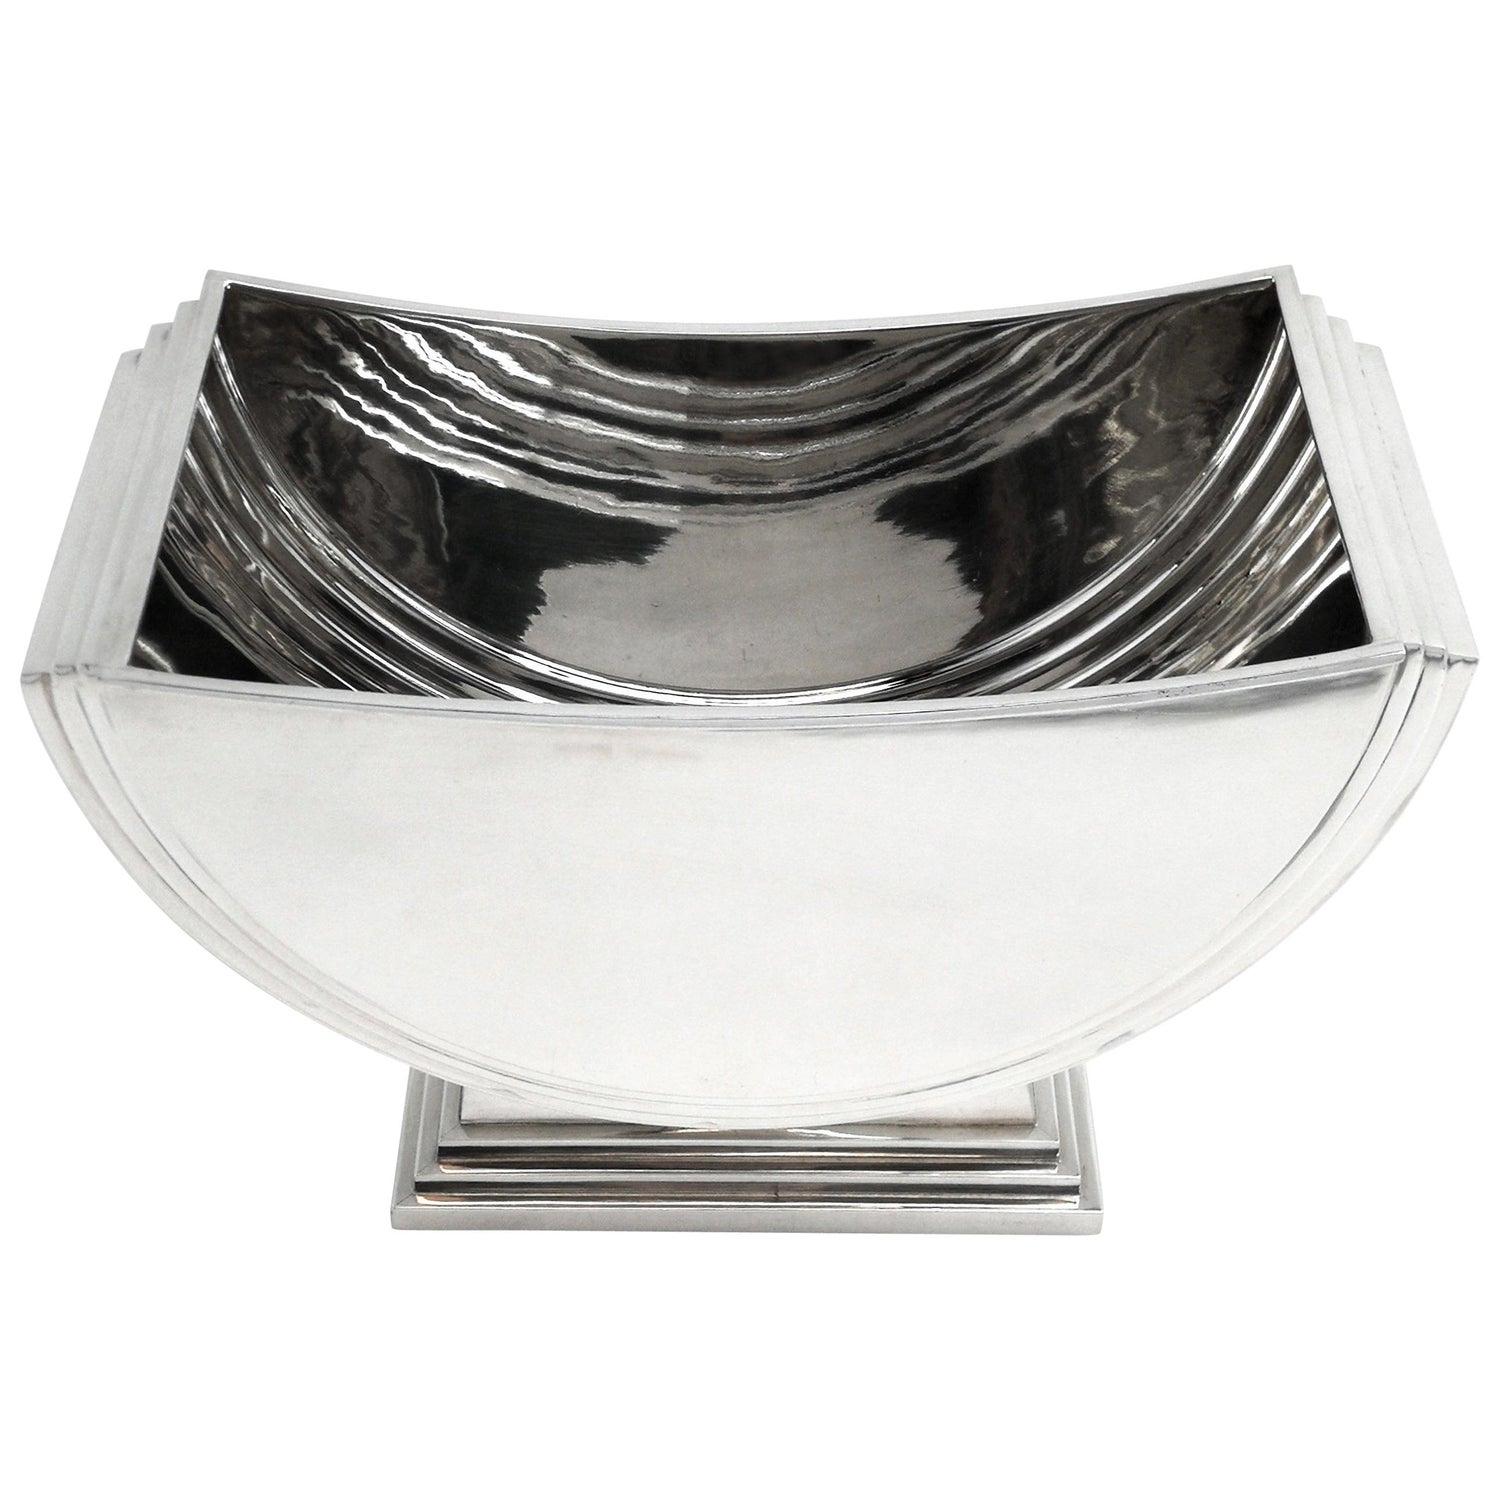 Sterling Silver Bowl / Champagne Cooler Art Deco Style 2013 Wine Ice Bucket